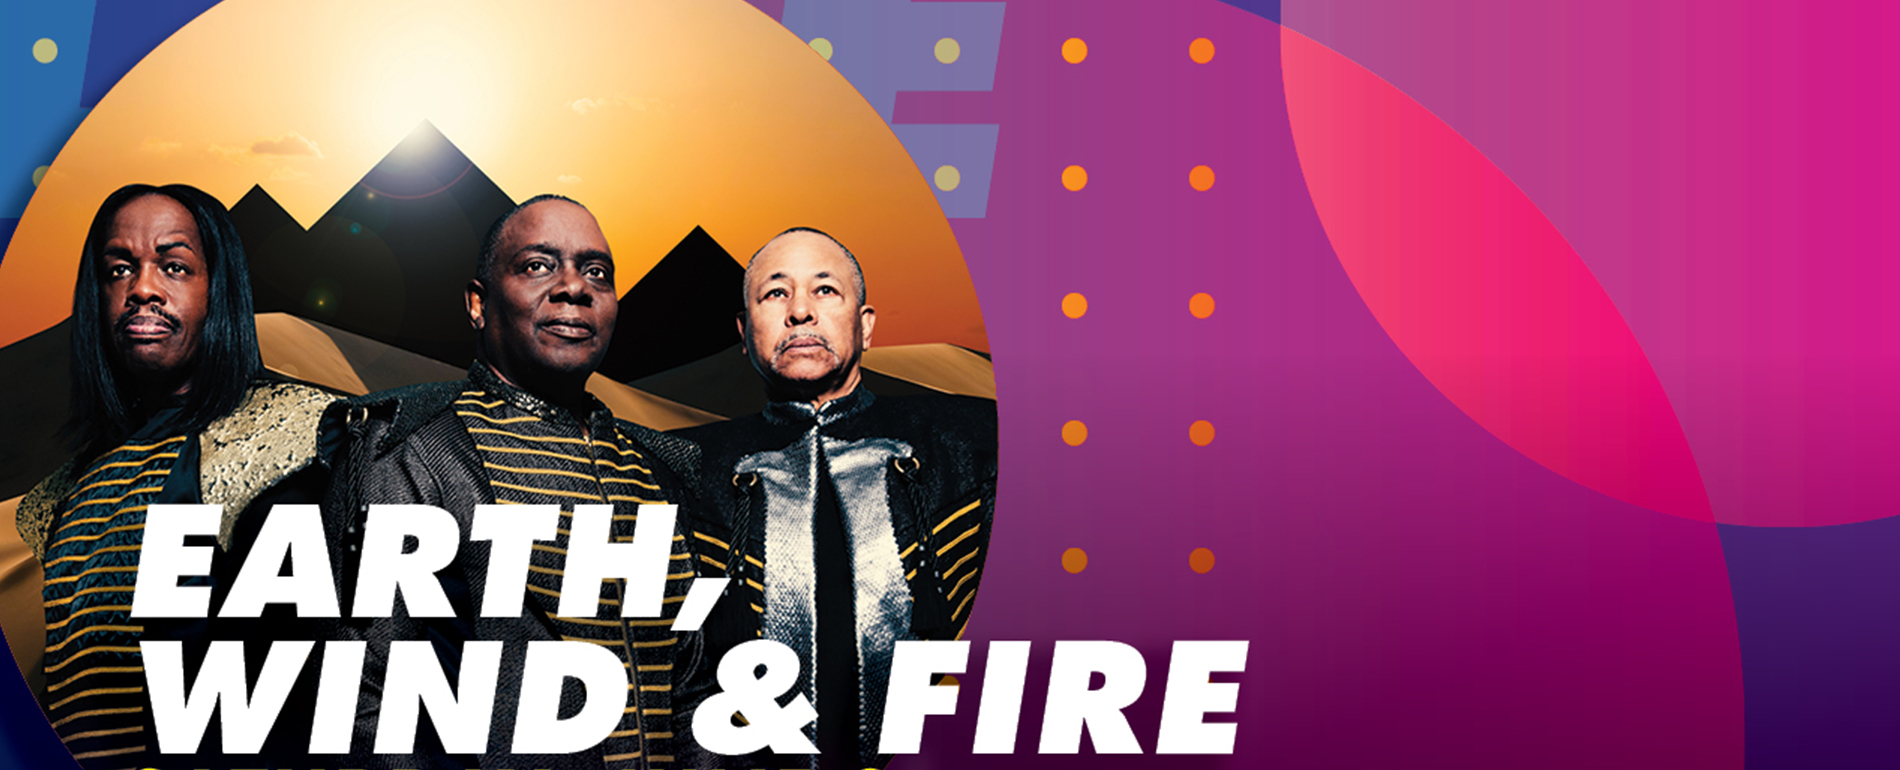 Mount Airy Casino Entertainment Earth, Wind & Fire